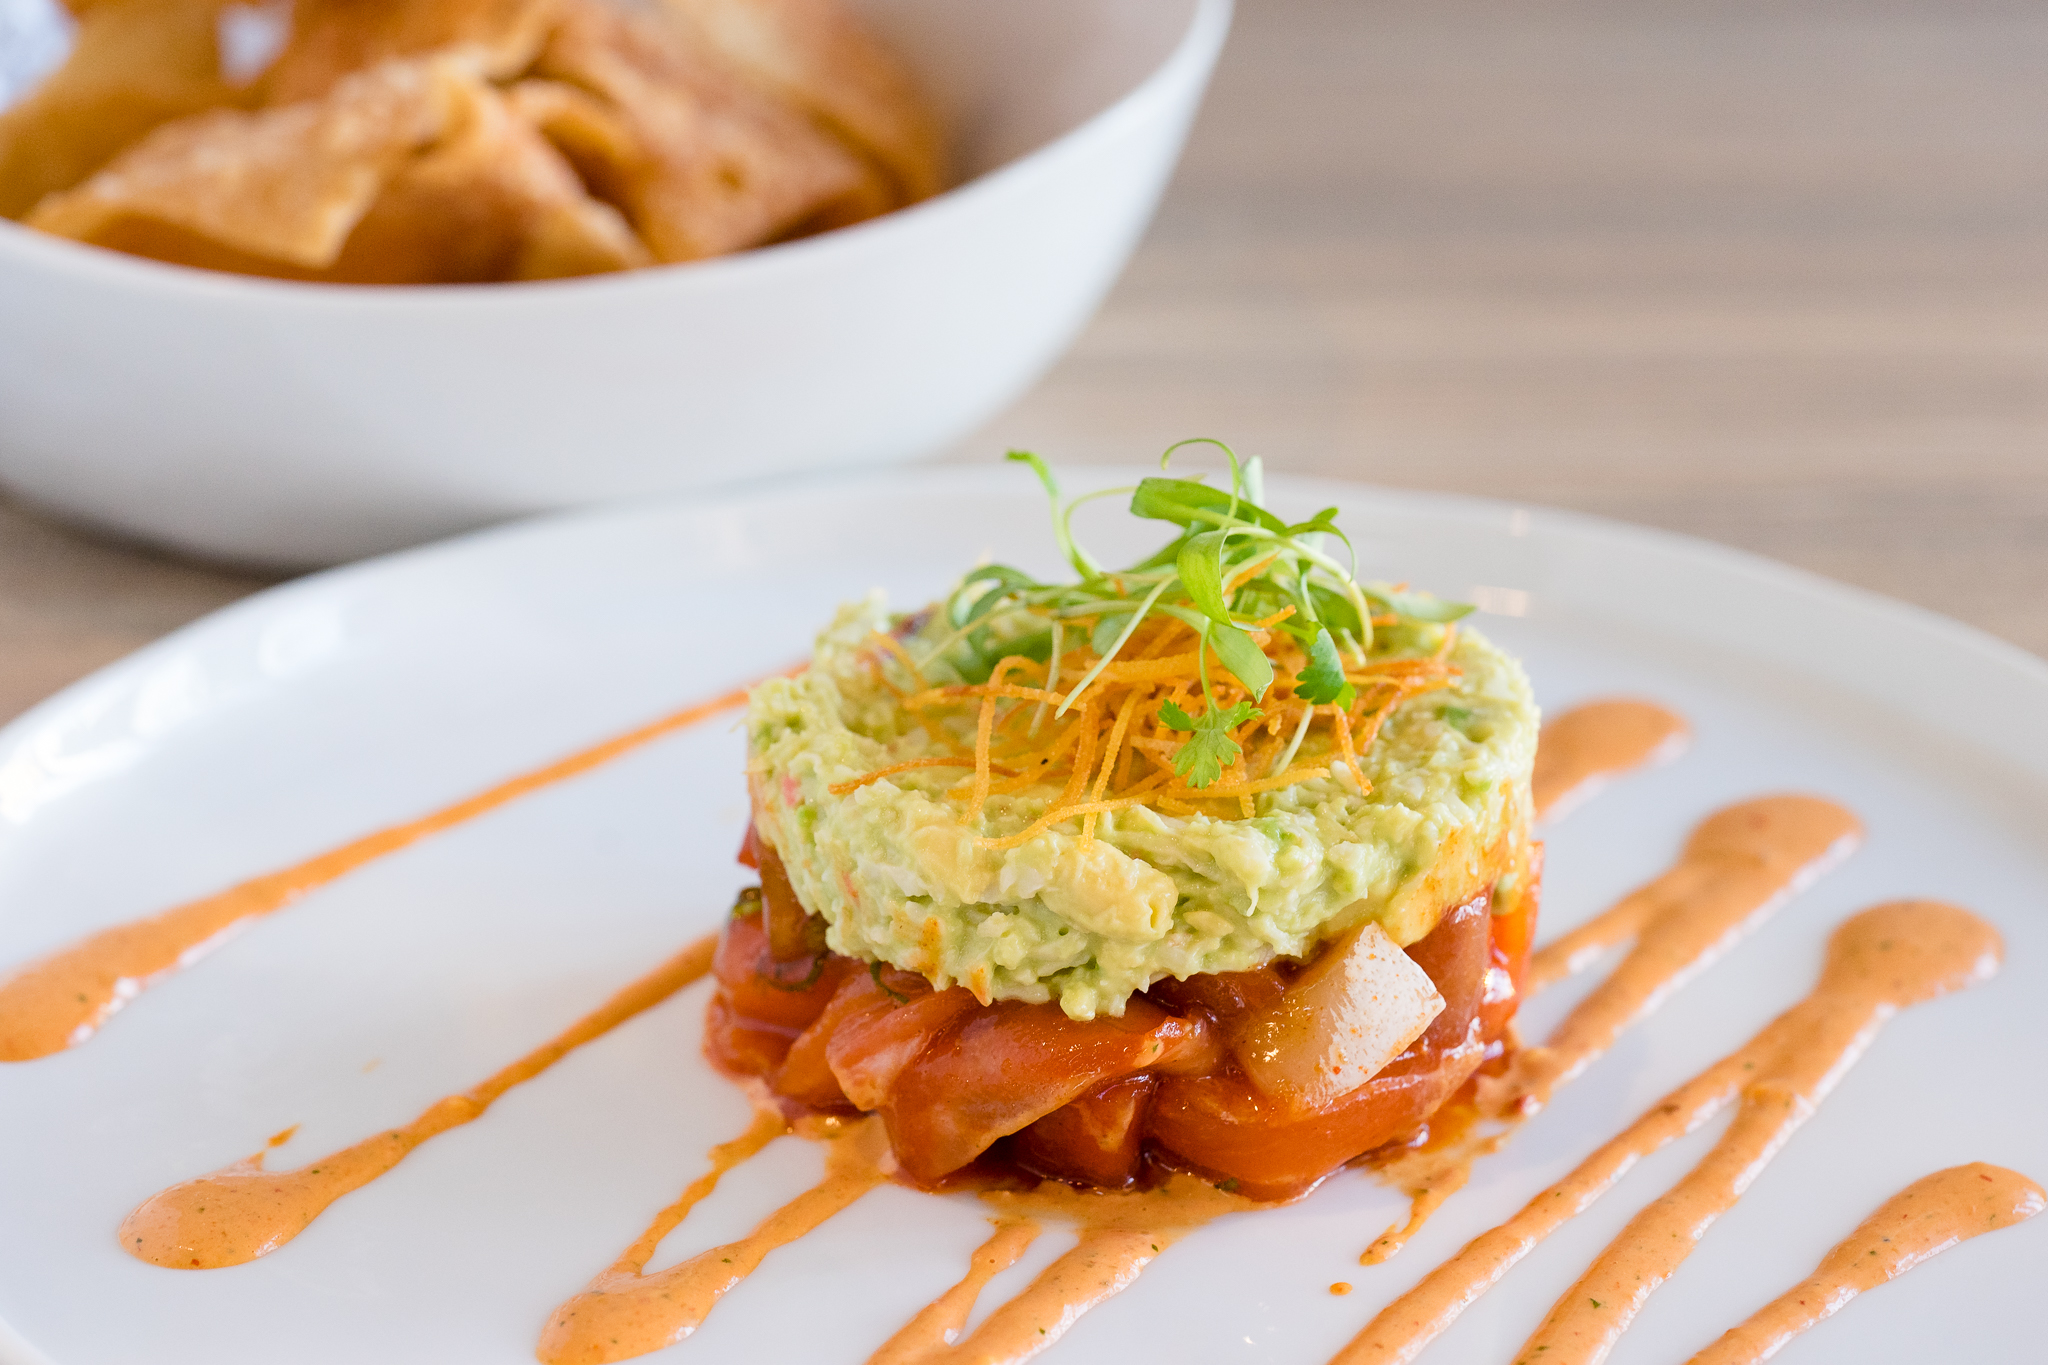 Raw Fish and Guacamole with Wonton Chips